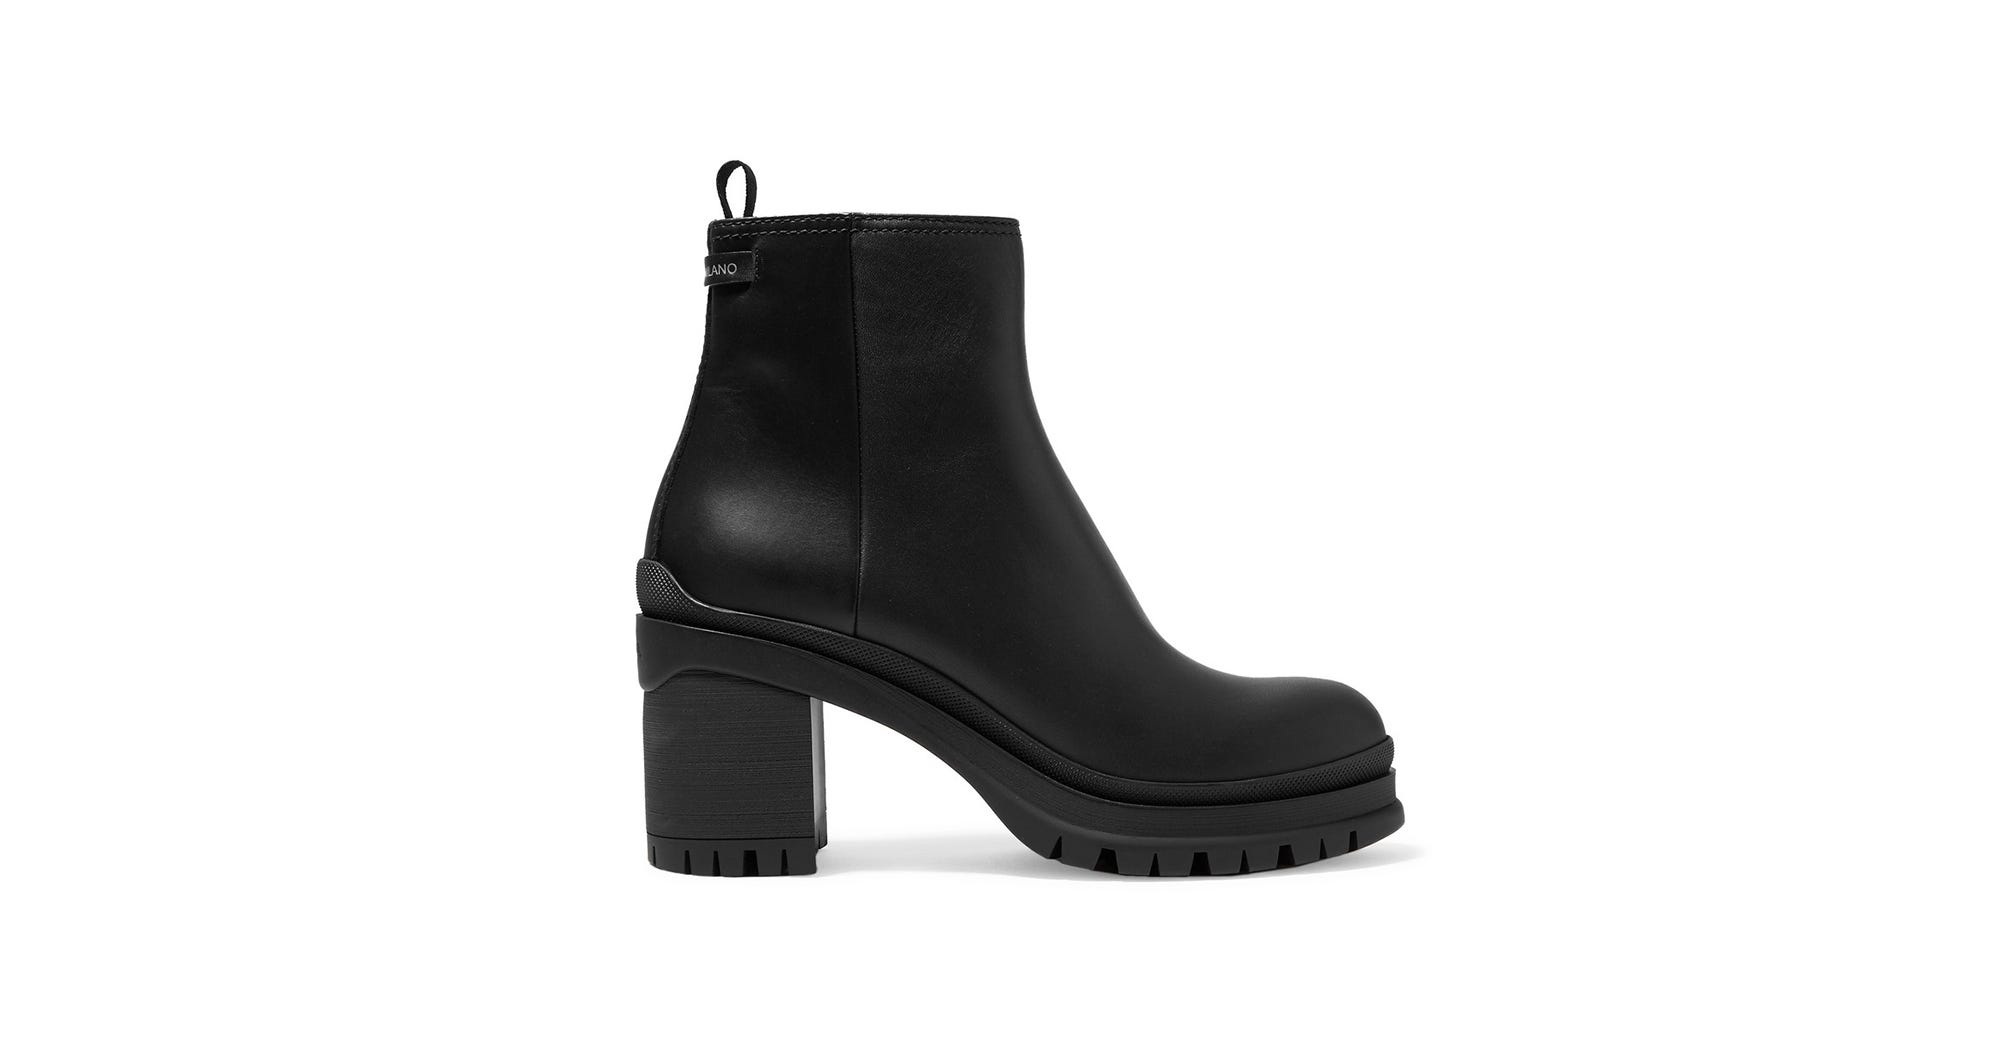 6ca3ea116683 Platform Boots   Shoes Trend For Women Fall Winter 2018